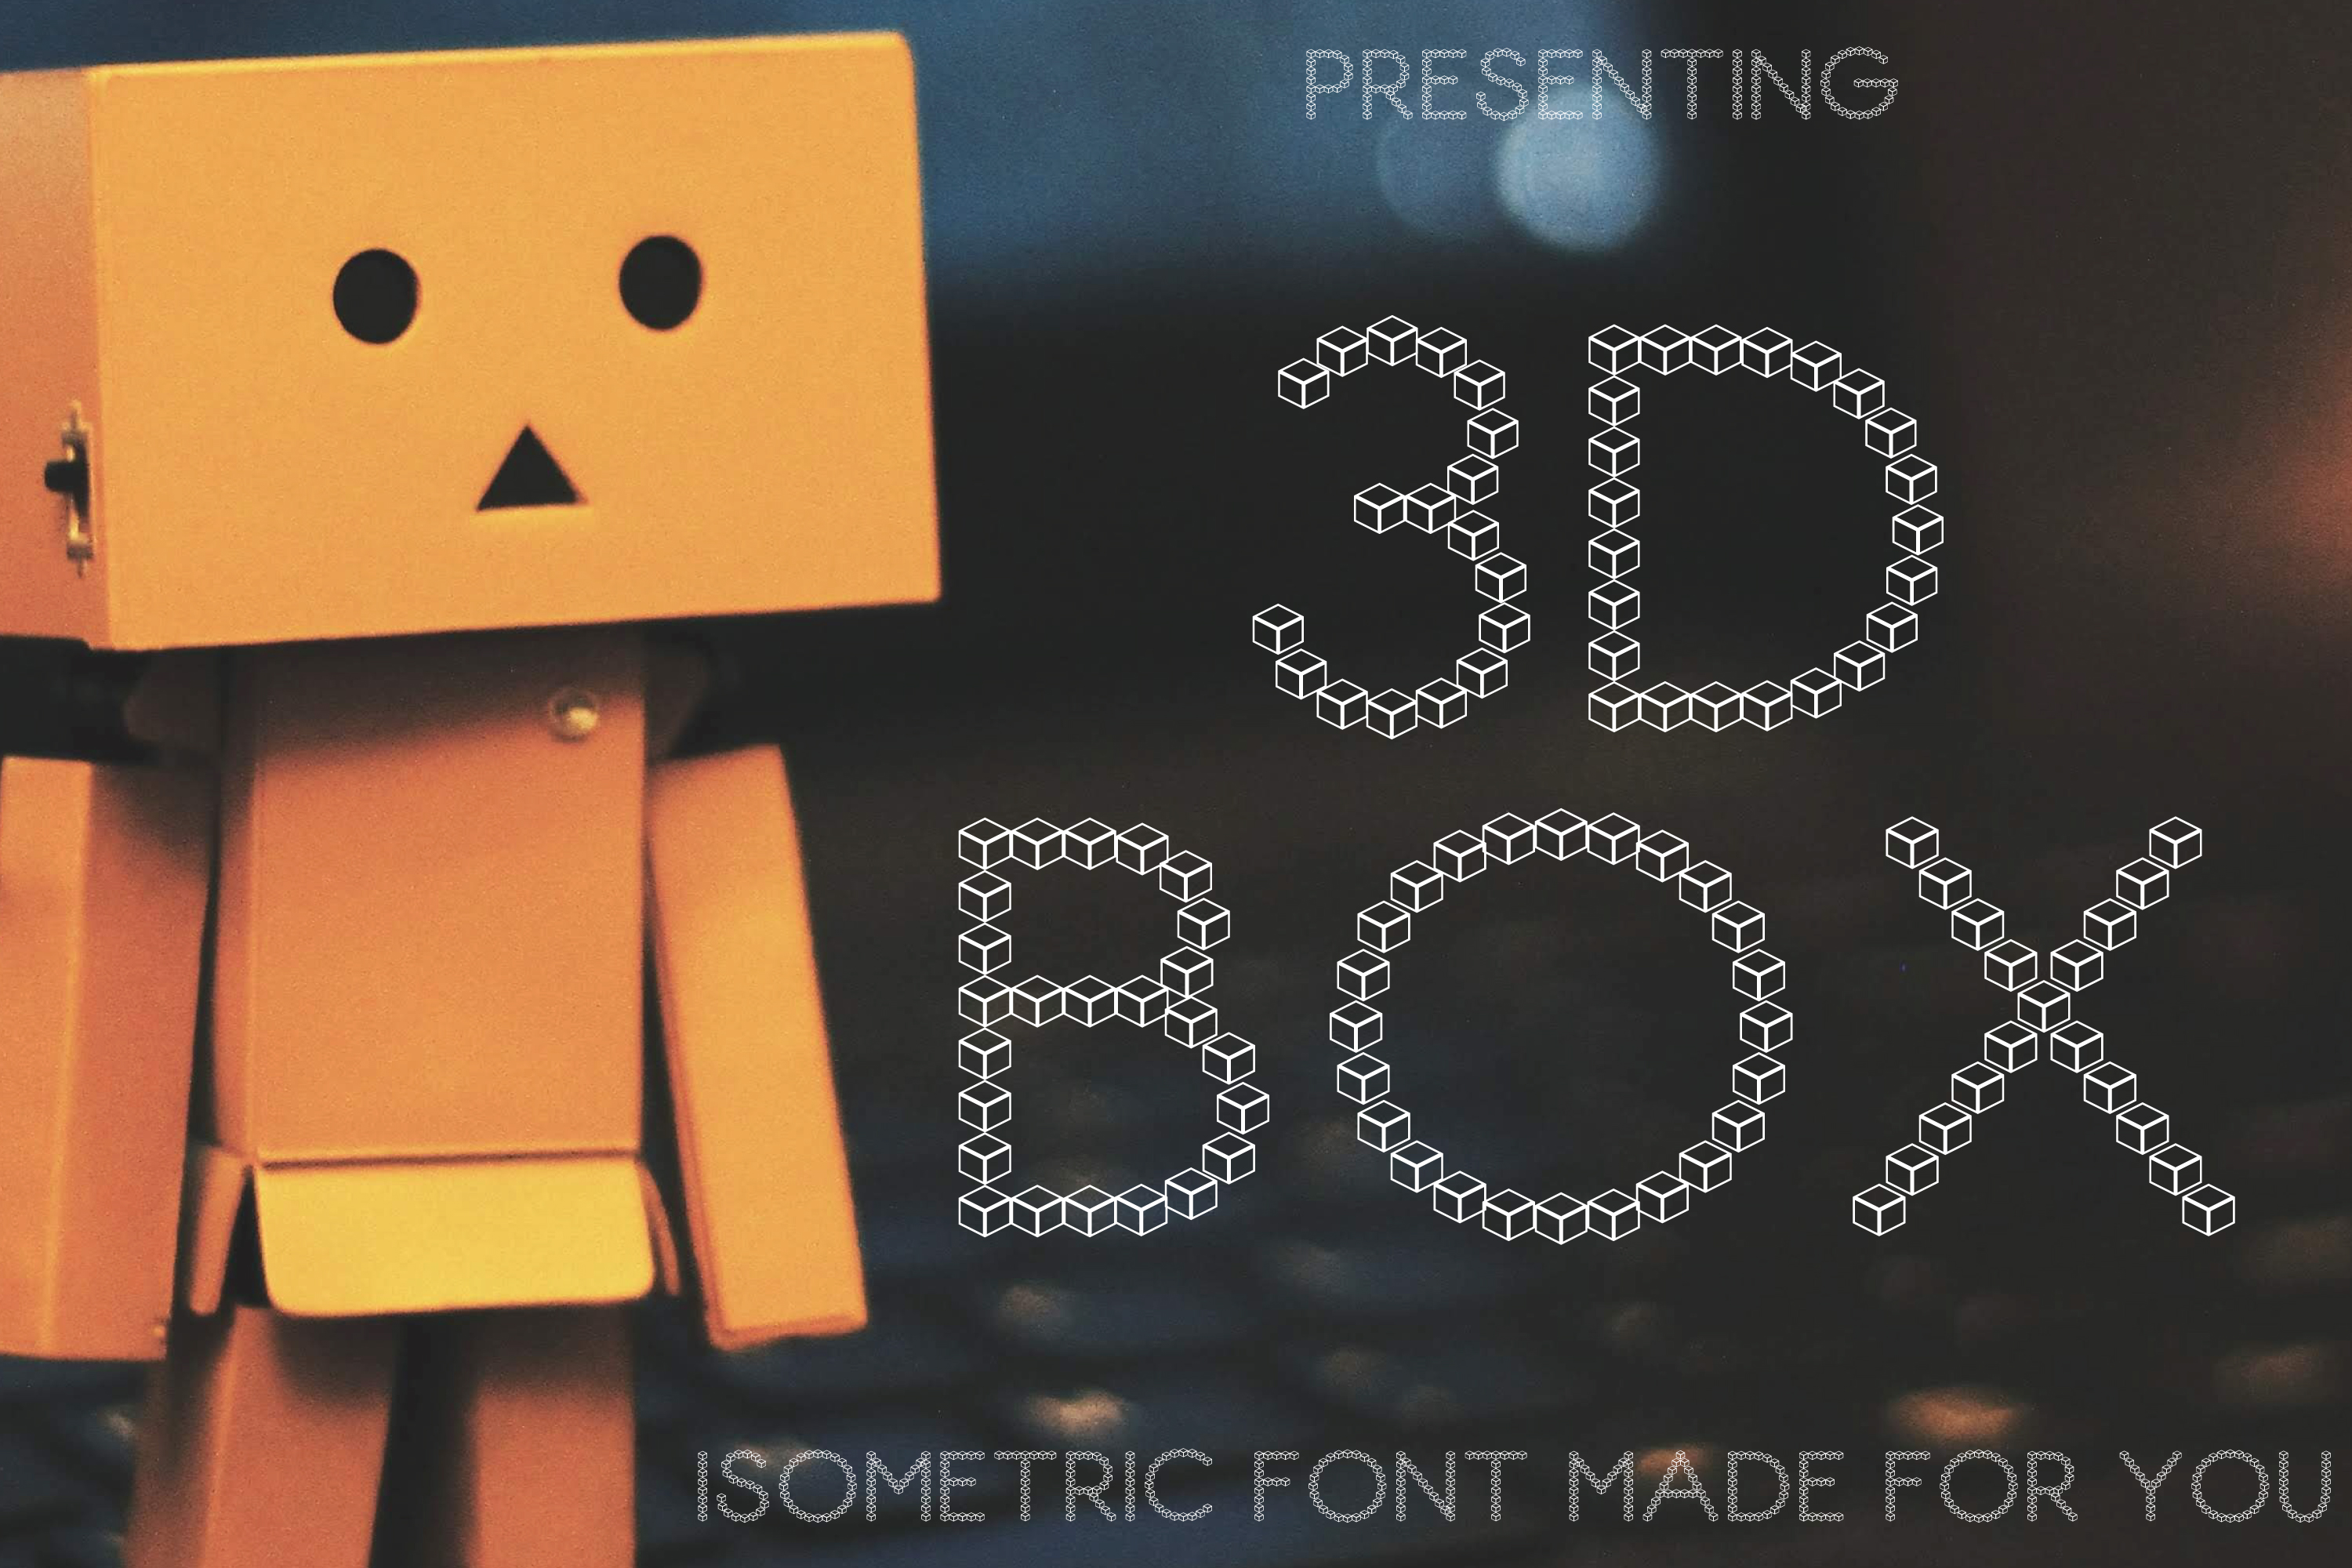 3D Box Font Isometric Style Paper Cut example image 1